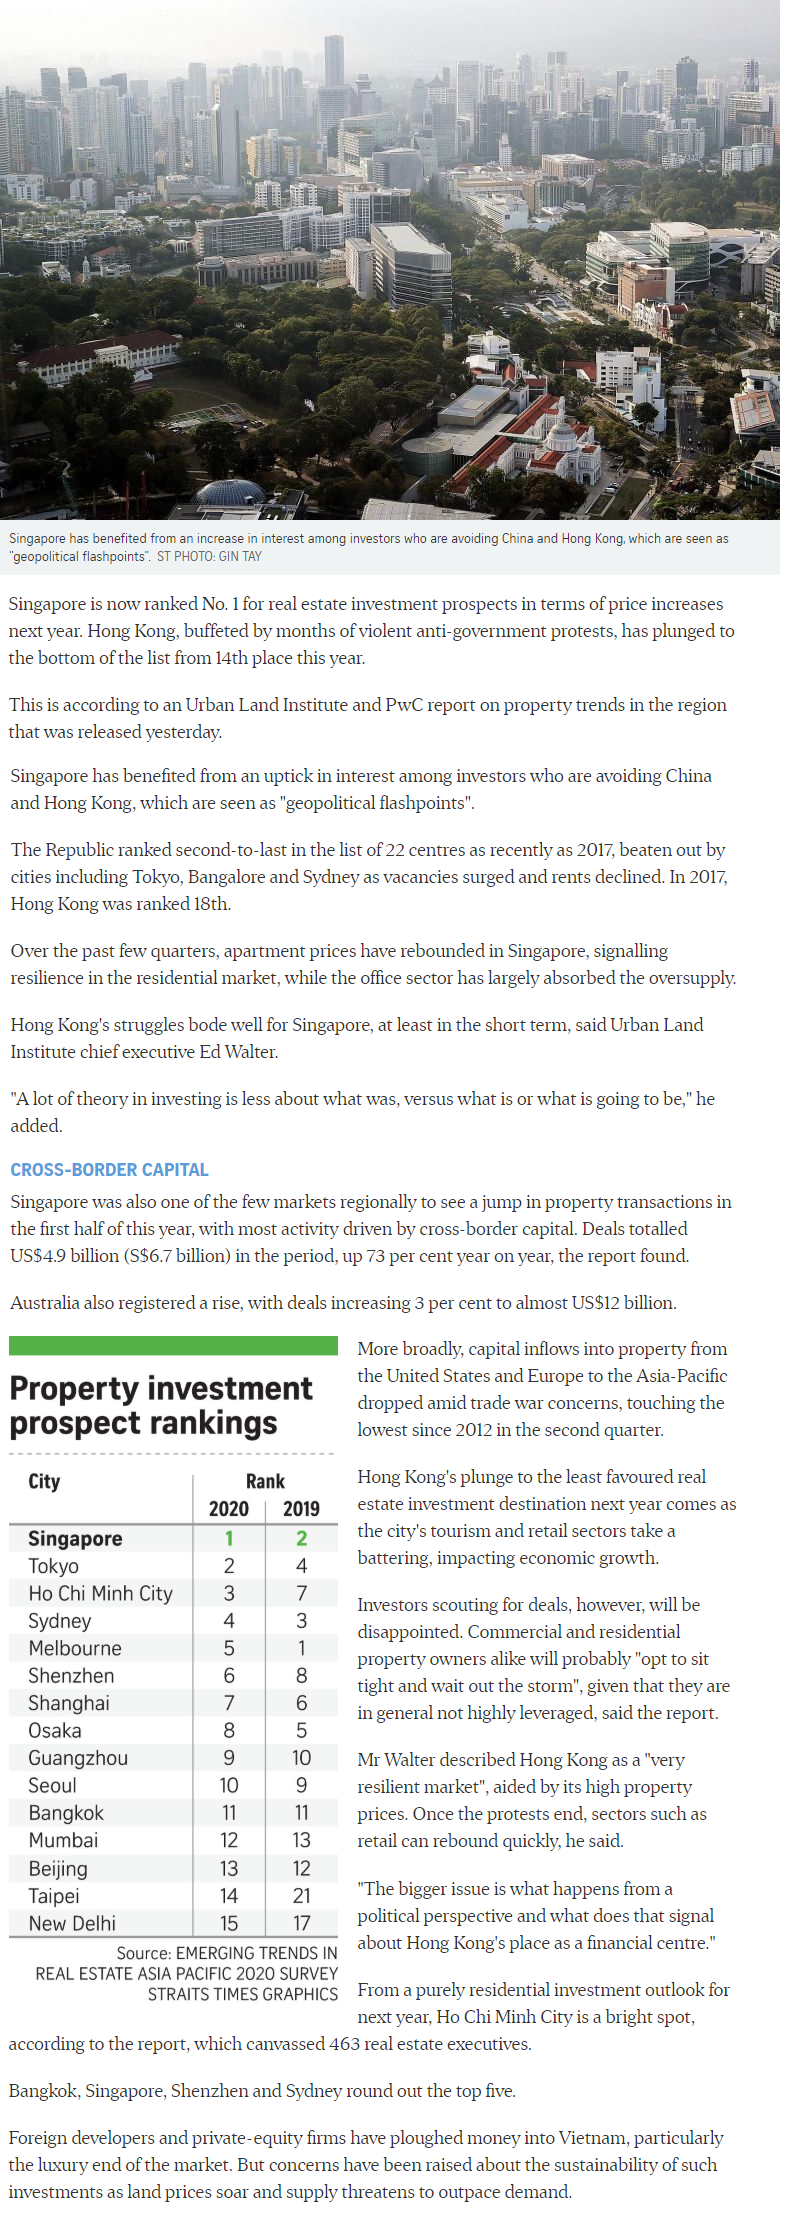 Midtown Modern - Singapore Tops Region For Property Investment Prospects